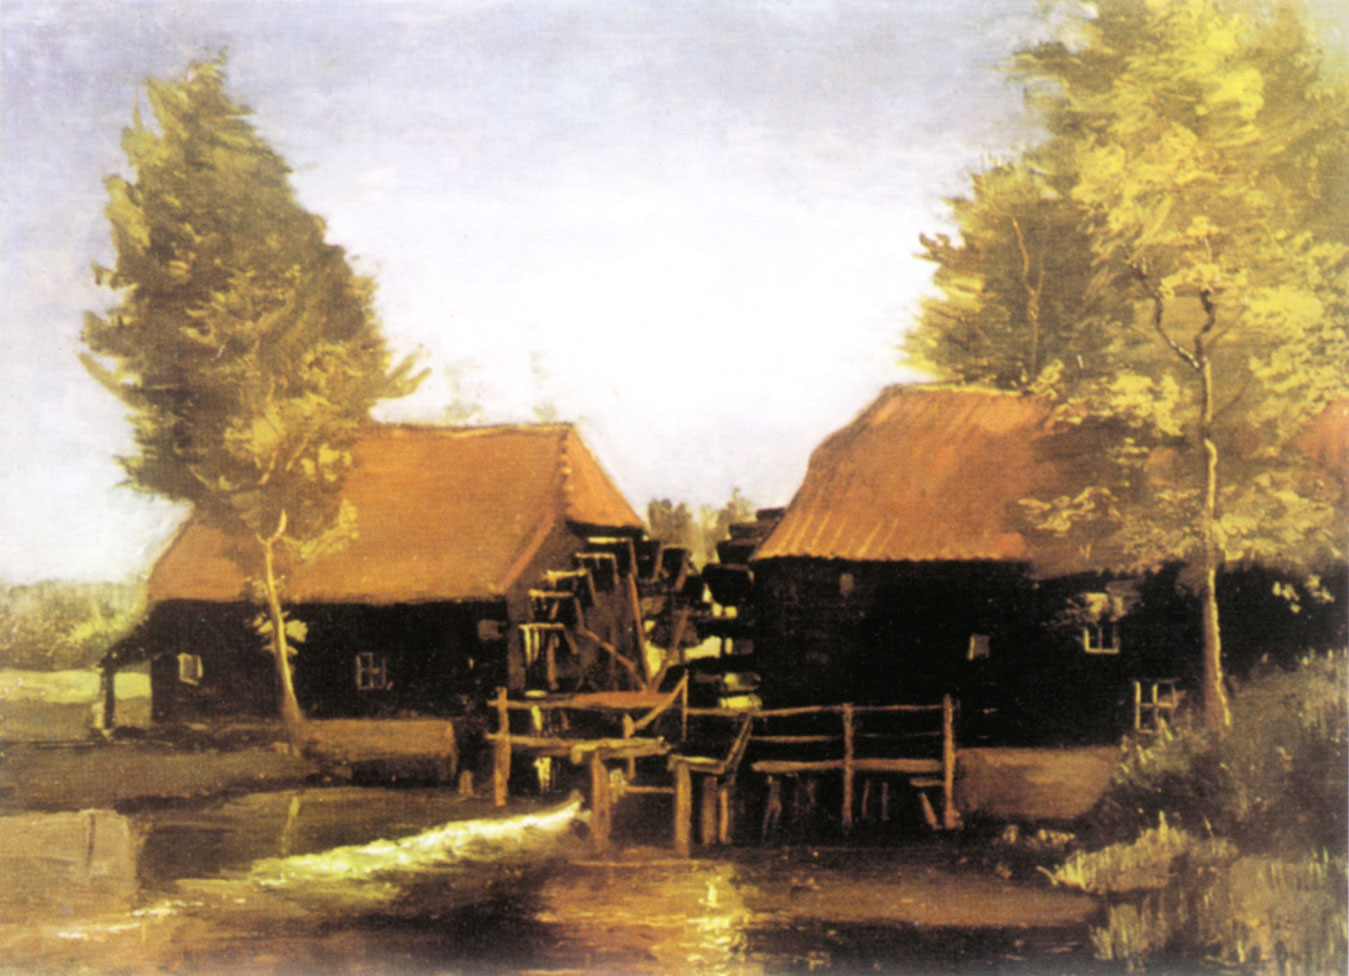 Van Gogh, The water mill at Kollen